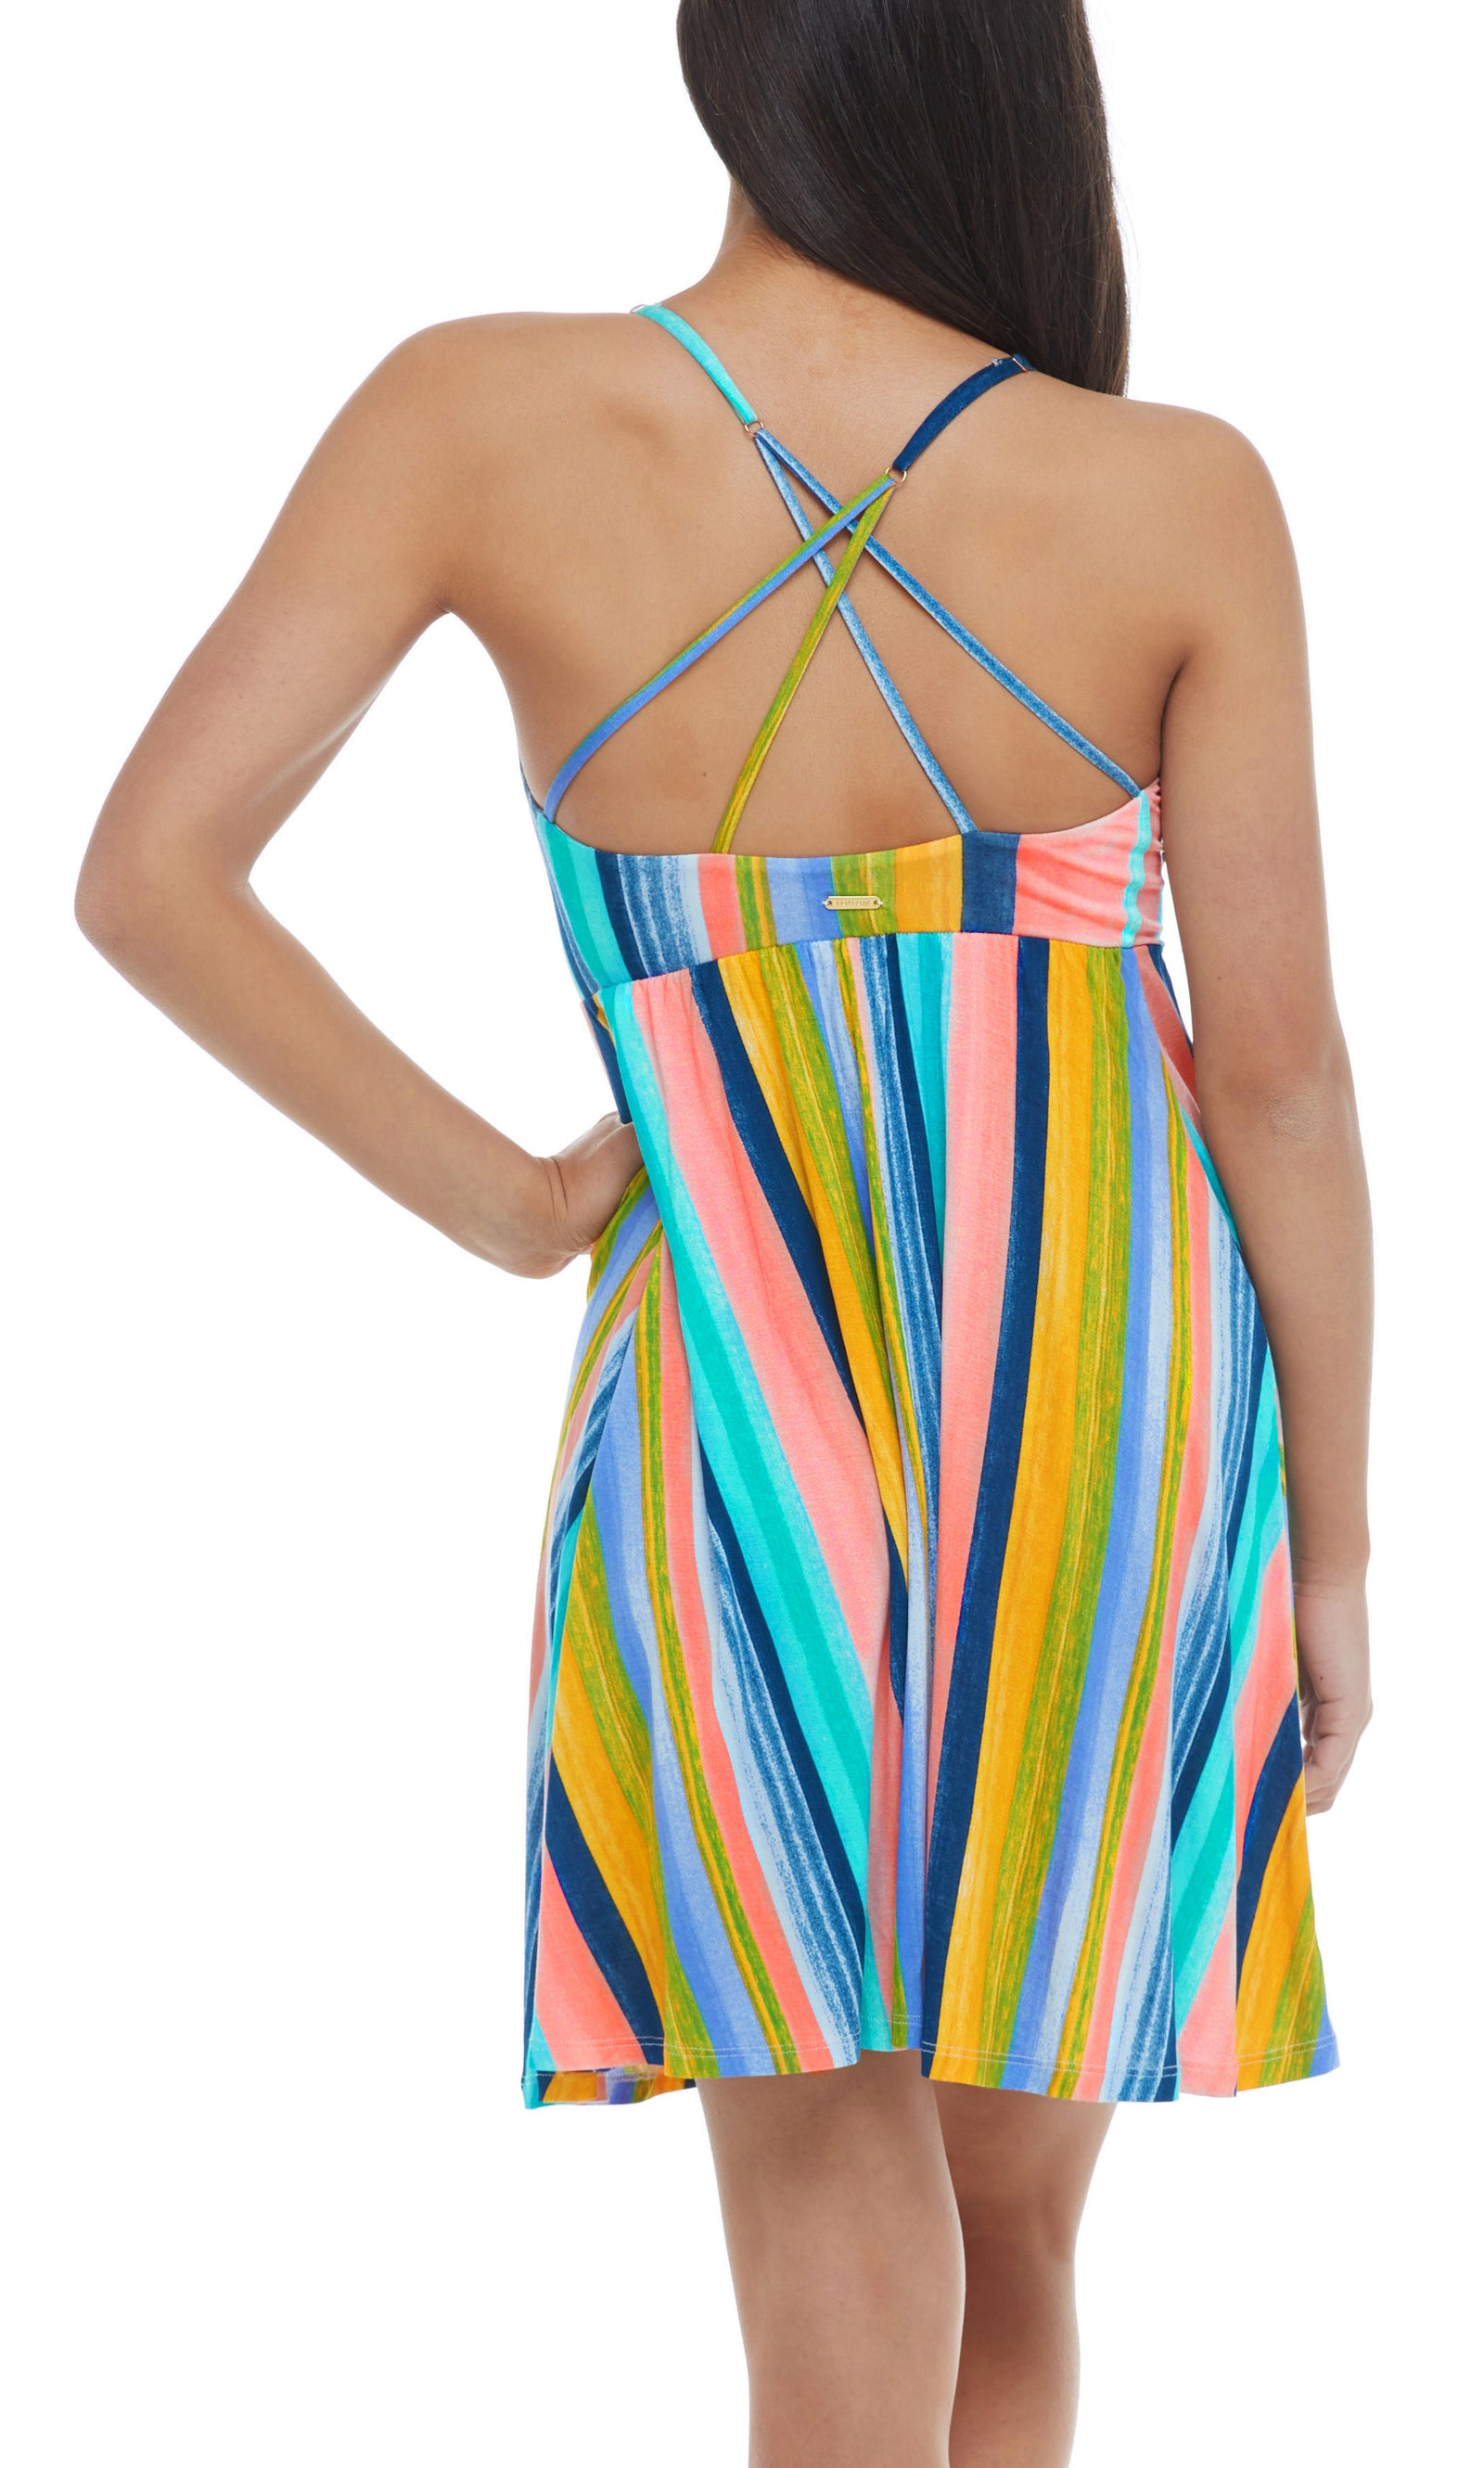 Swim cover-up dress Empire waist Adjustable spaghetti straps Back-strap detail Mid-thigh length Knit rayon material 80% nylon, 20% Spandex Product Number: 39-522621